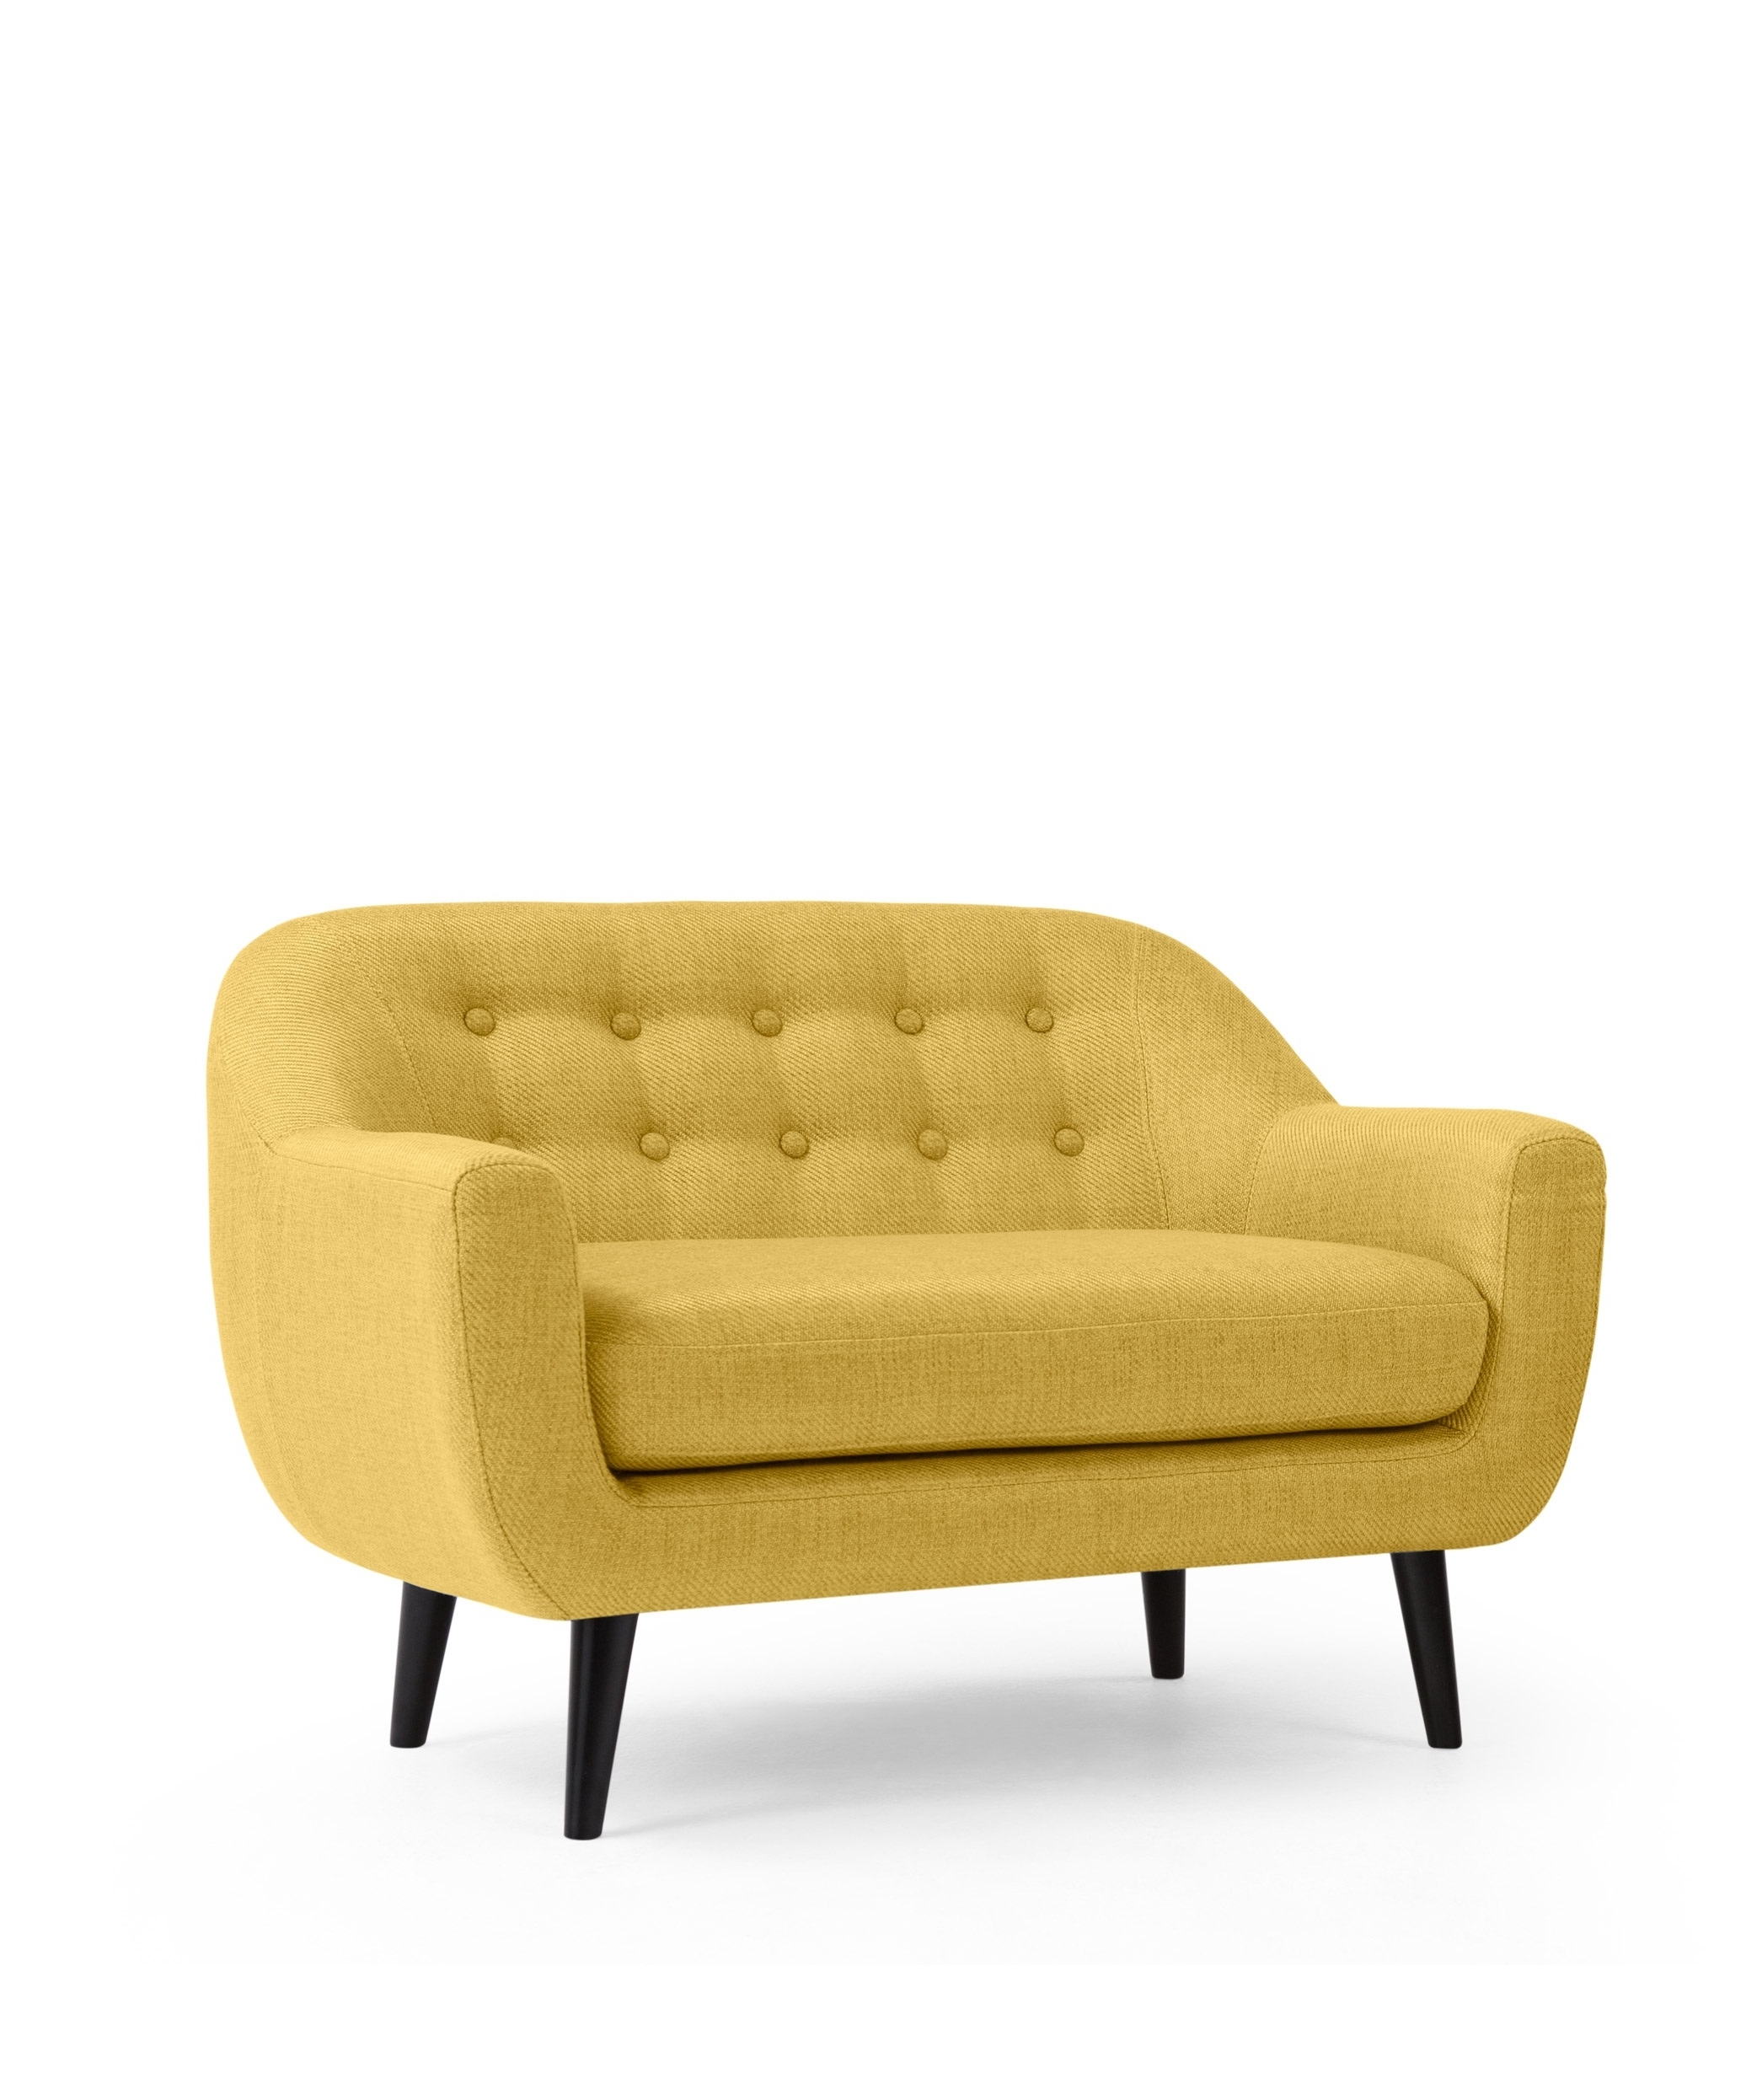 Widely Used The Mini Ritchie 2 Seater Sofa, In Ochre Yellow (View 20 of 20)